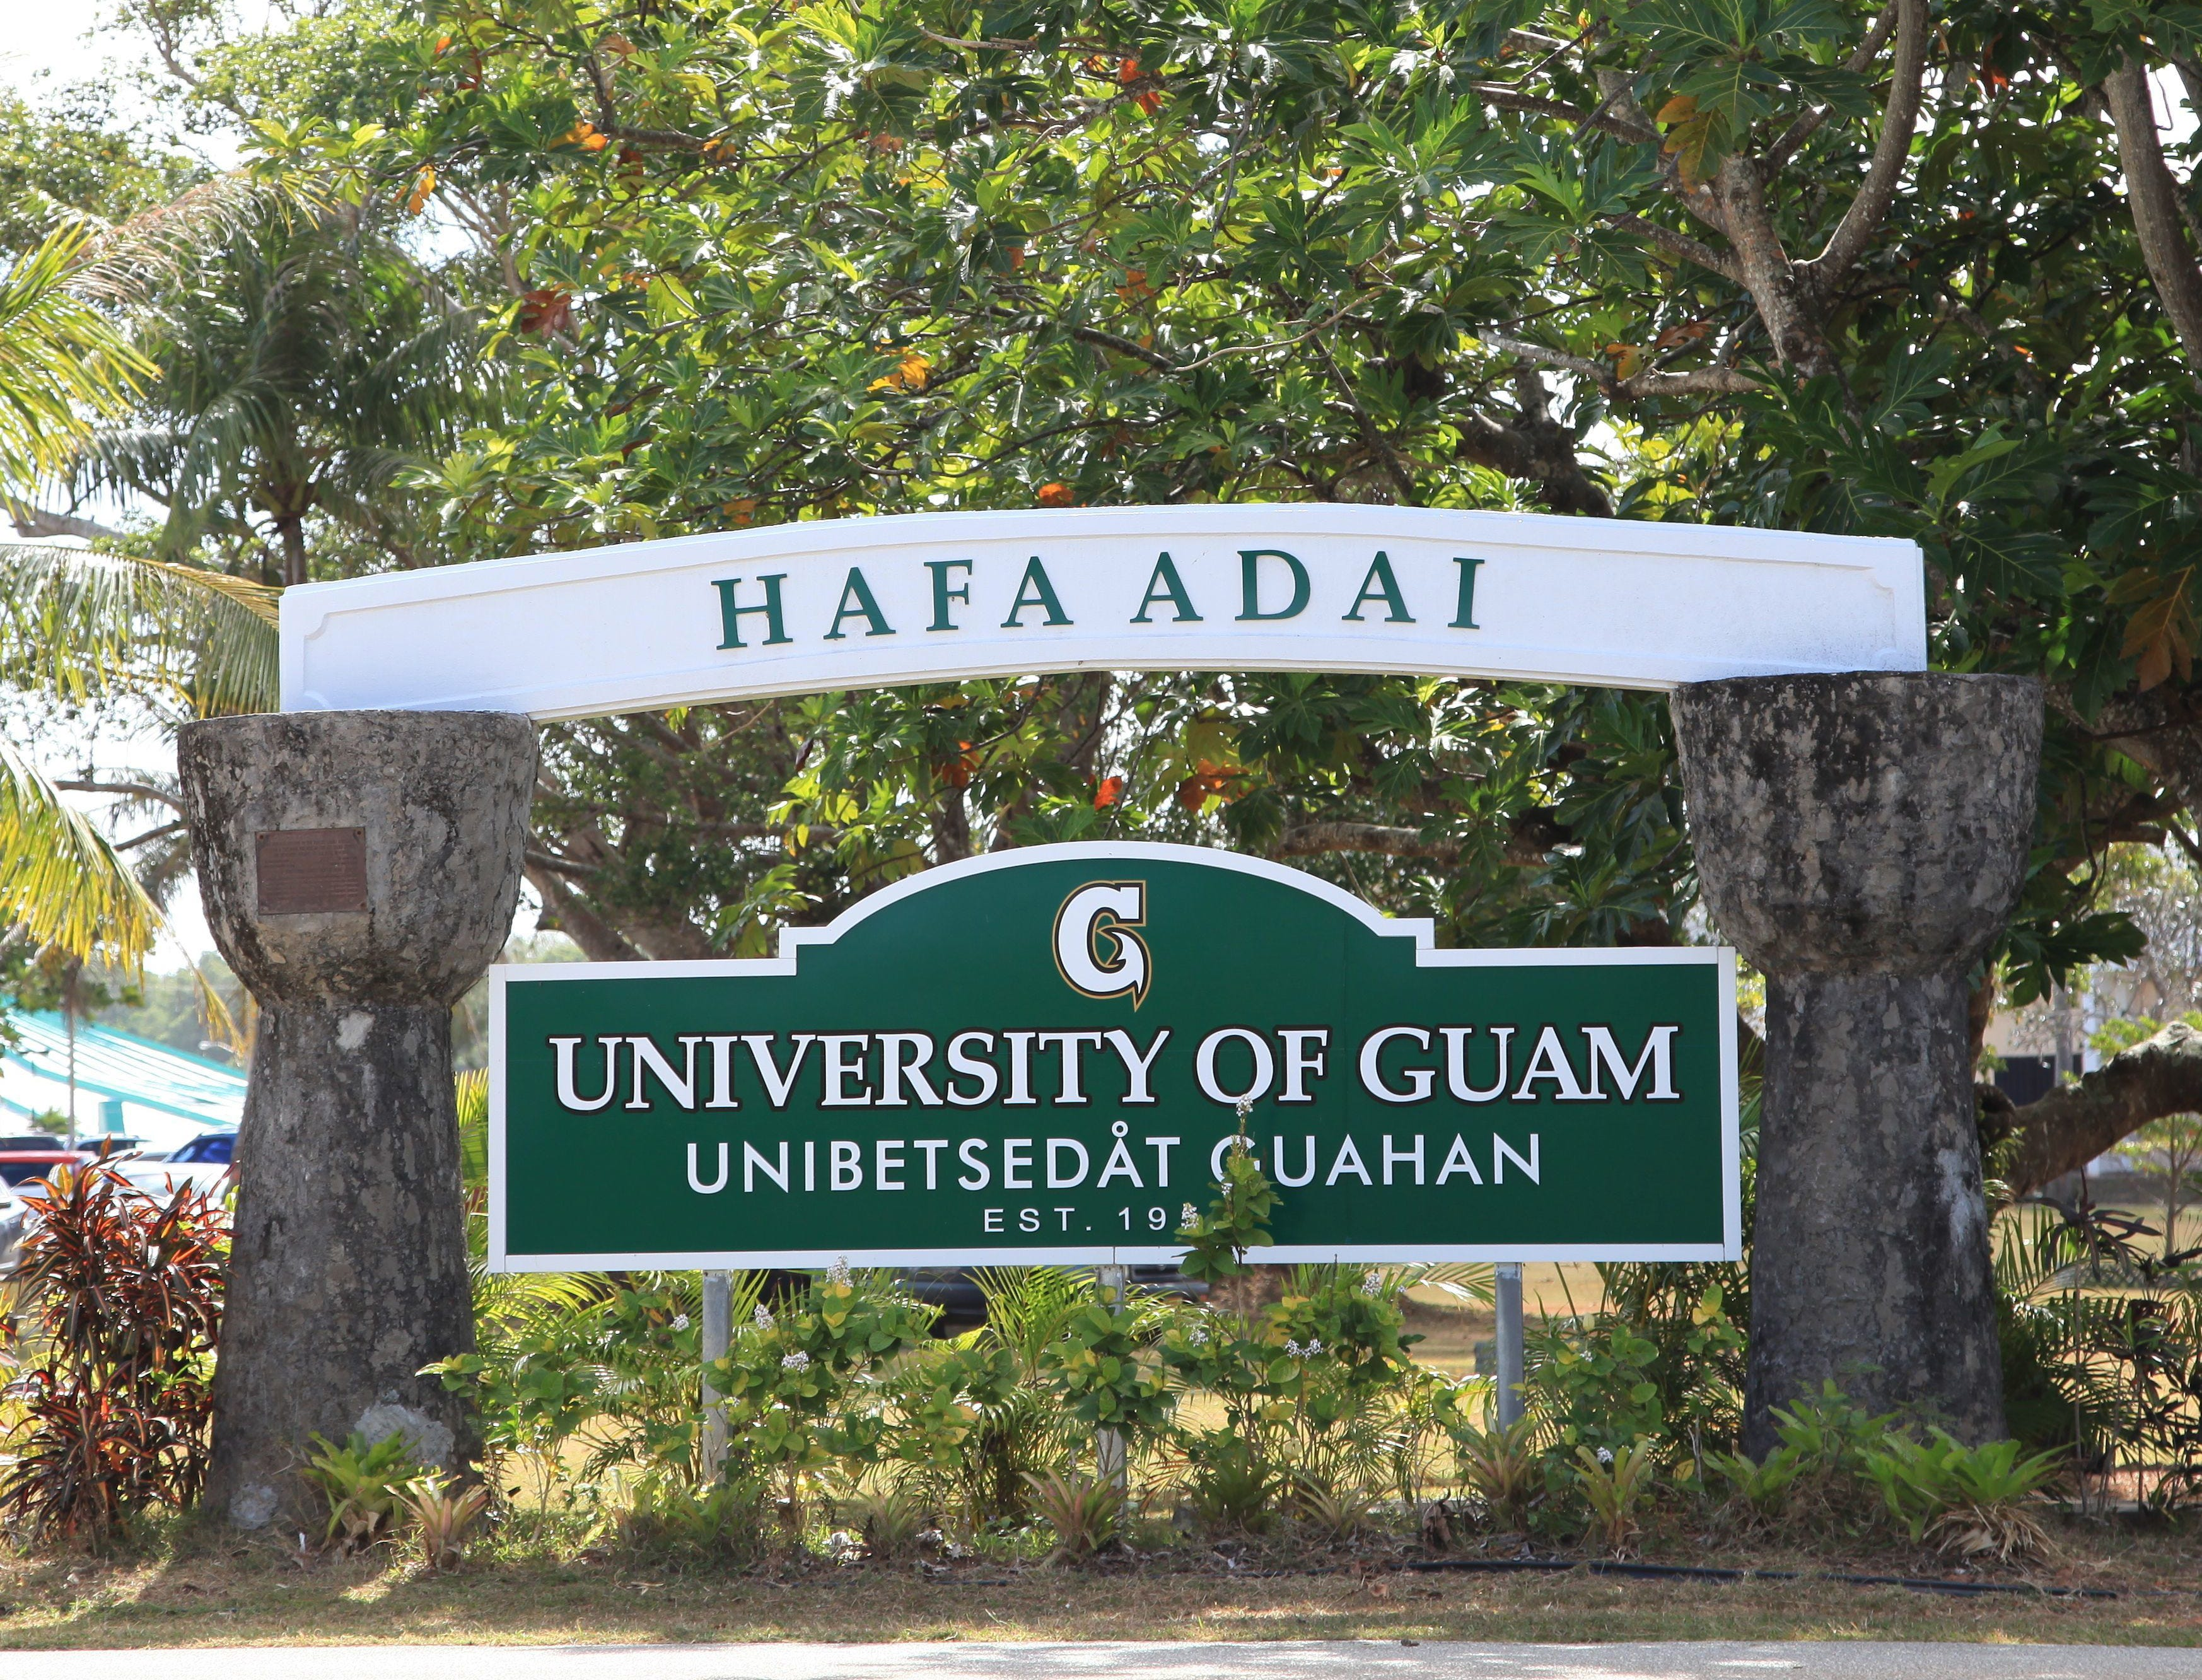 University of Guam activities are authorized to serve alcohol under strict conditions, according to the university.